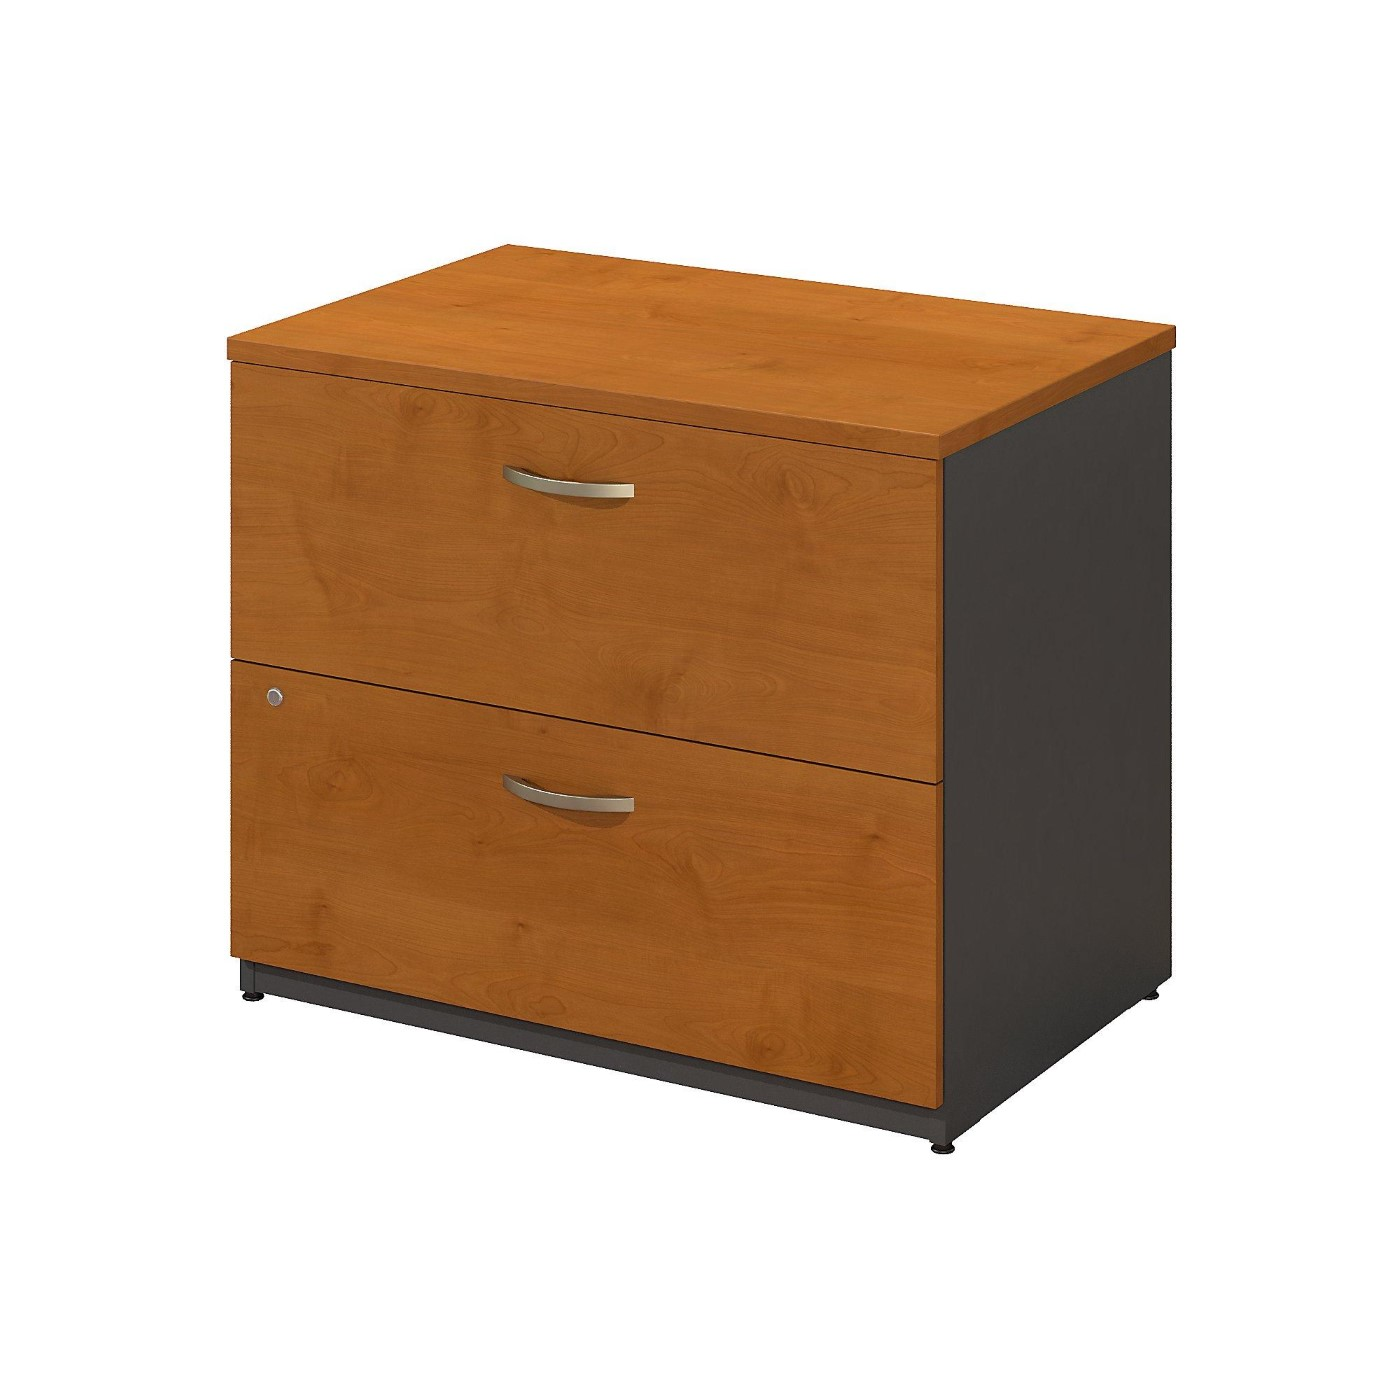 <font color=#c60><b>BUSH BUSINESS FURNITURE SERIES C LATERAL FILE CABINET. FREE SHIPPING</font></b></font>